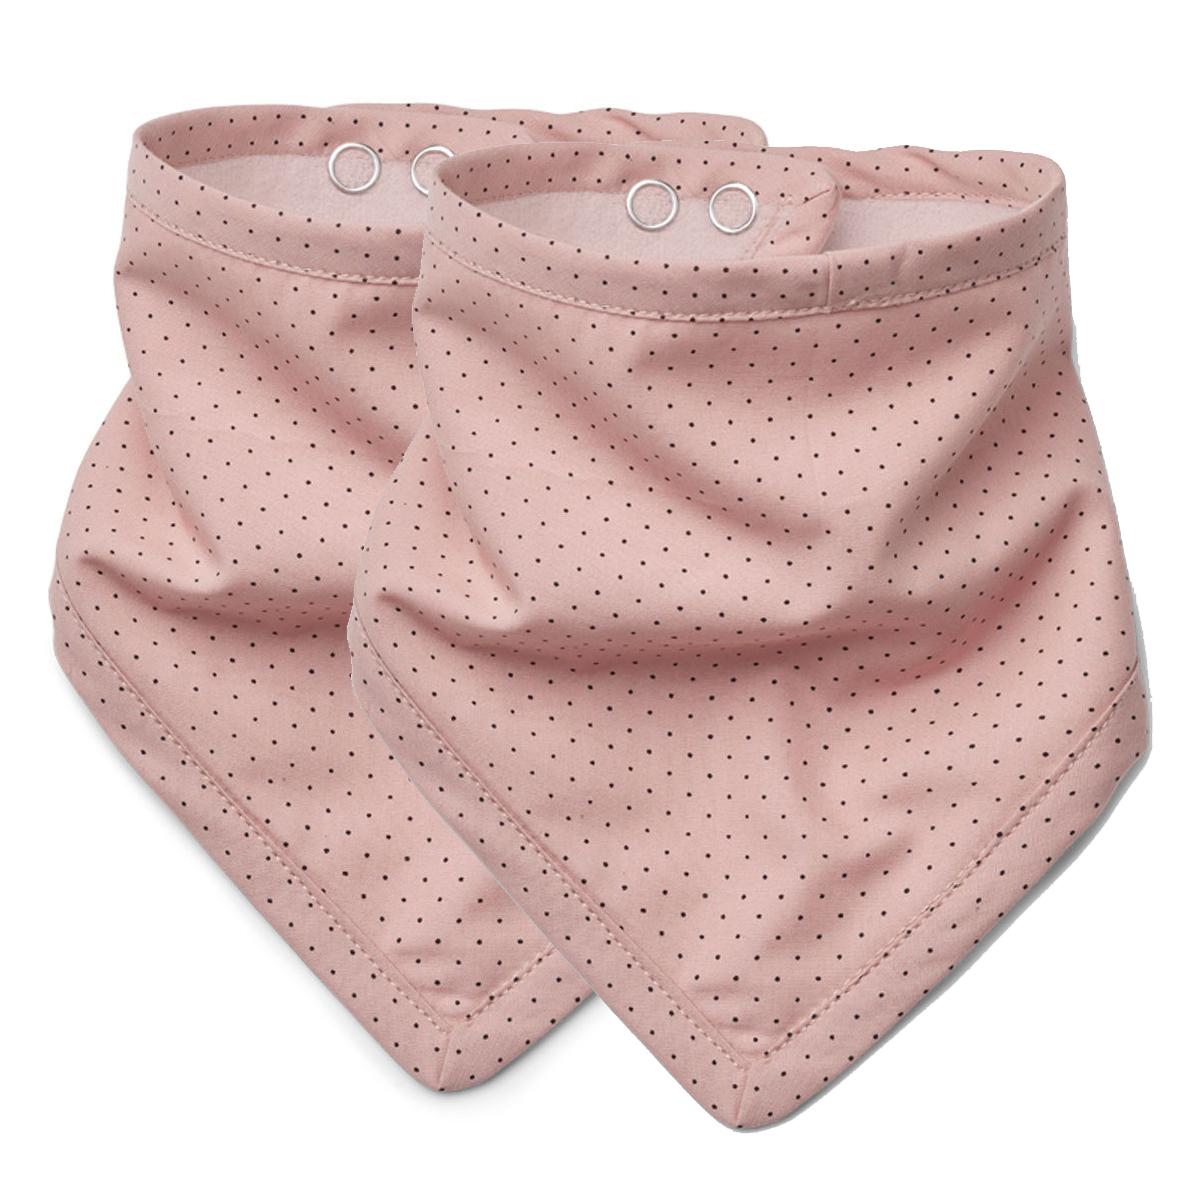 Bavoir Lot de 2 Bavoirs Johanne - Little Dots Rose Lot de 2 Bavoirs Johanne - Little Dots Rose